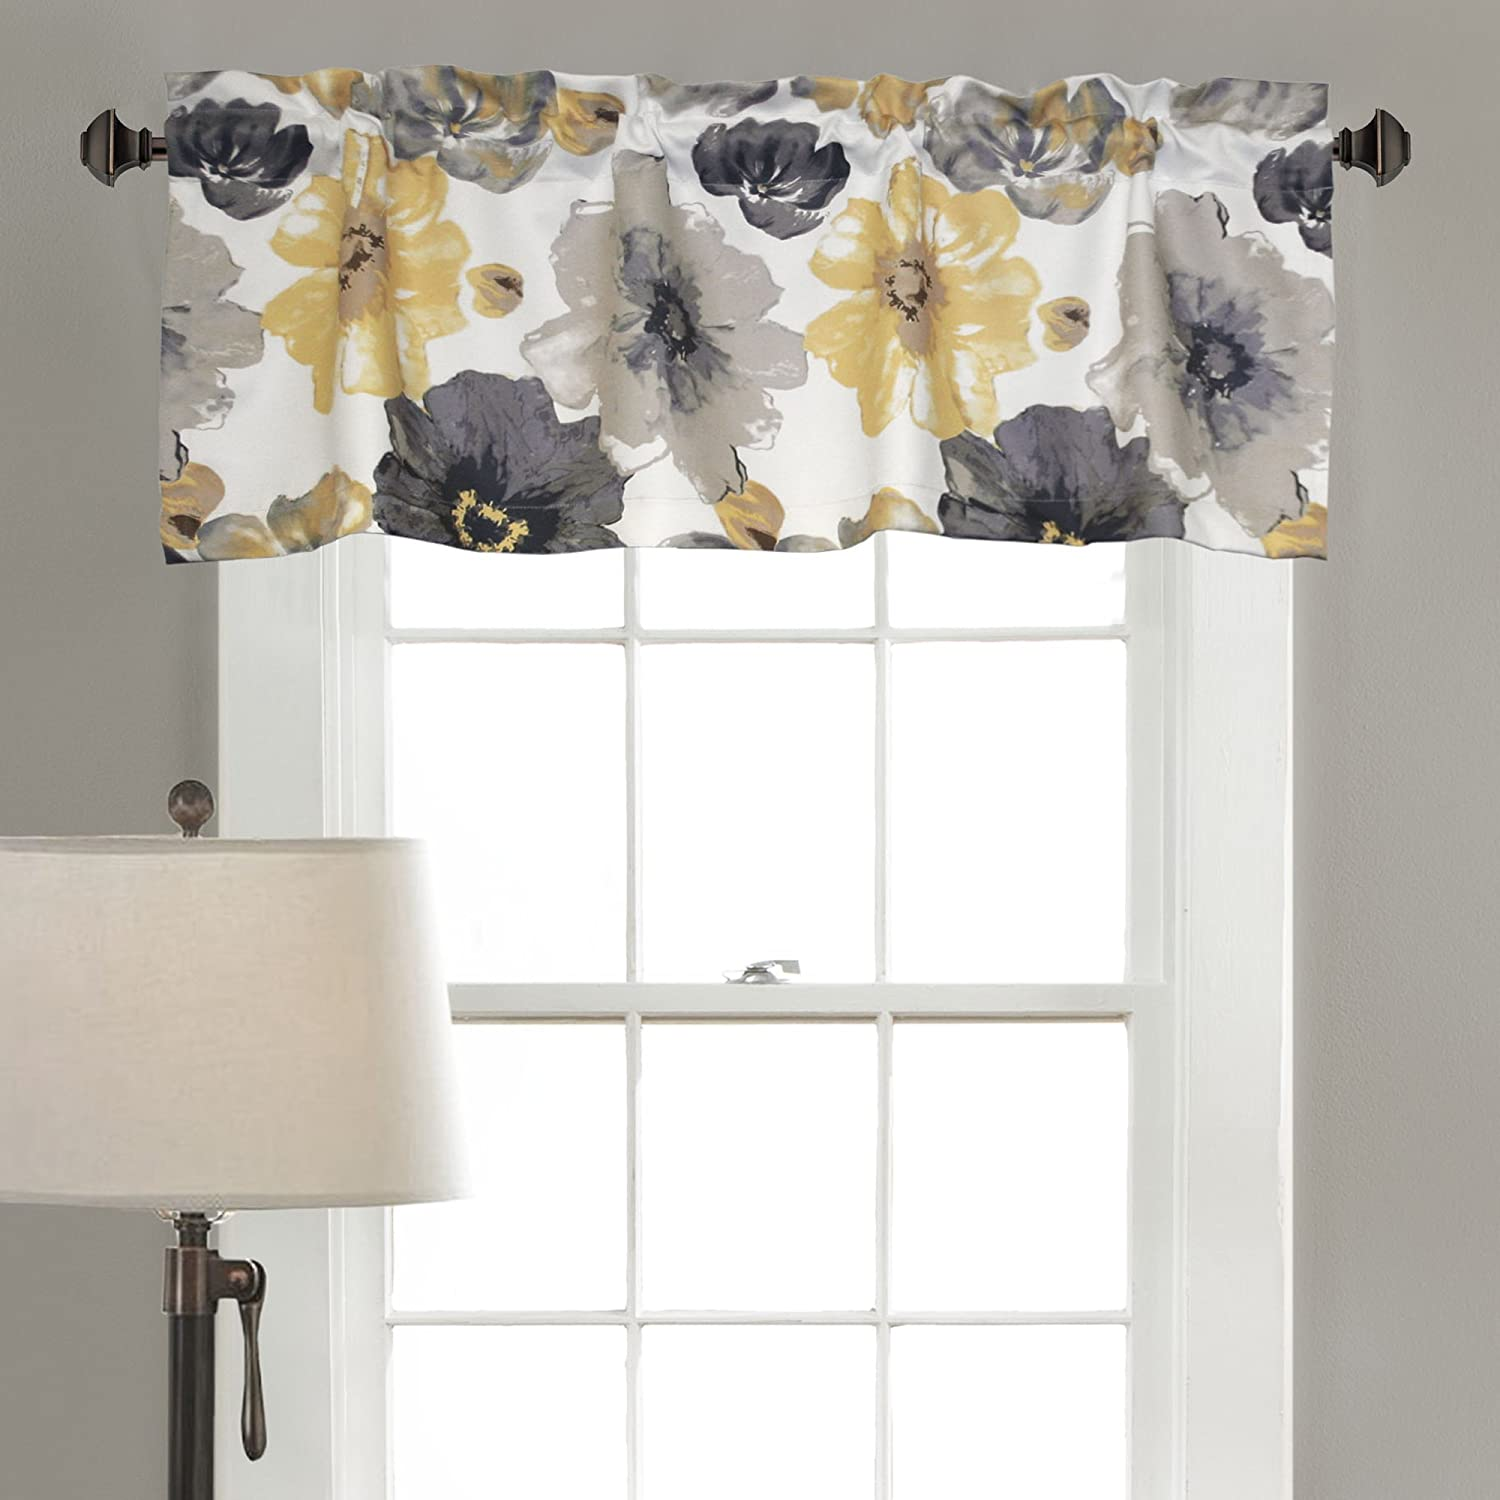 valance reviews home laura windows charlotte rugs nursery by pdp window lane ashley birch